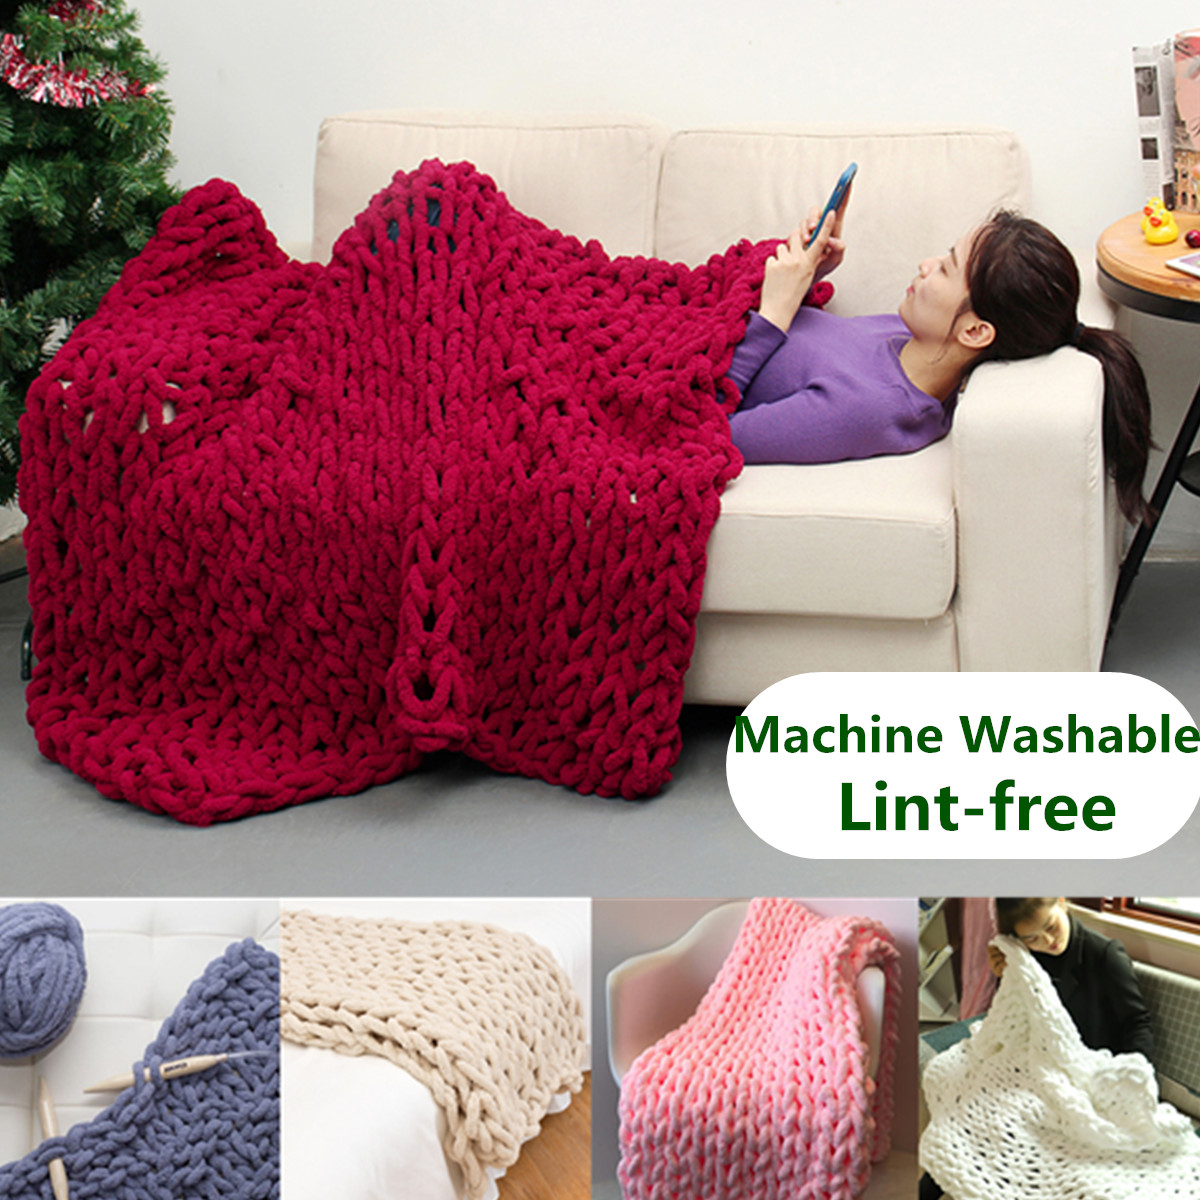 Hand-woven Soft Chunky Knitted Blanket Bulky Thick Yarn Bed Sofa Throw - Washable and Lint-free